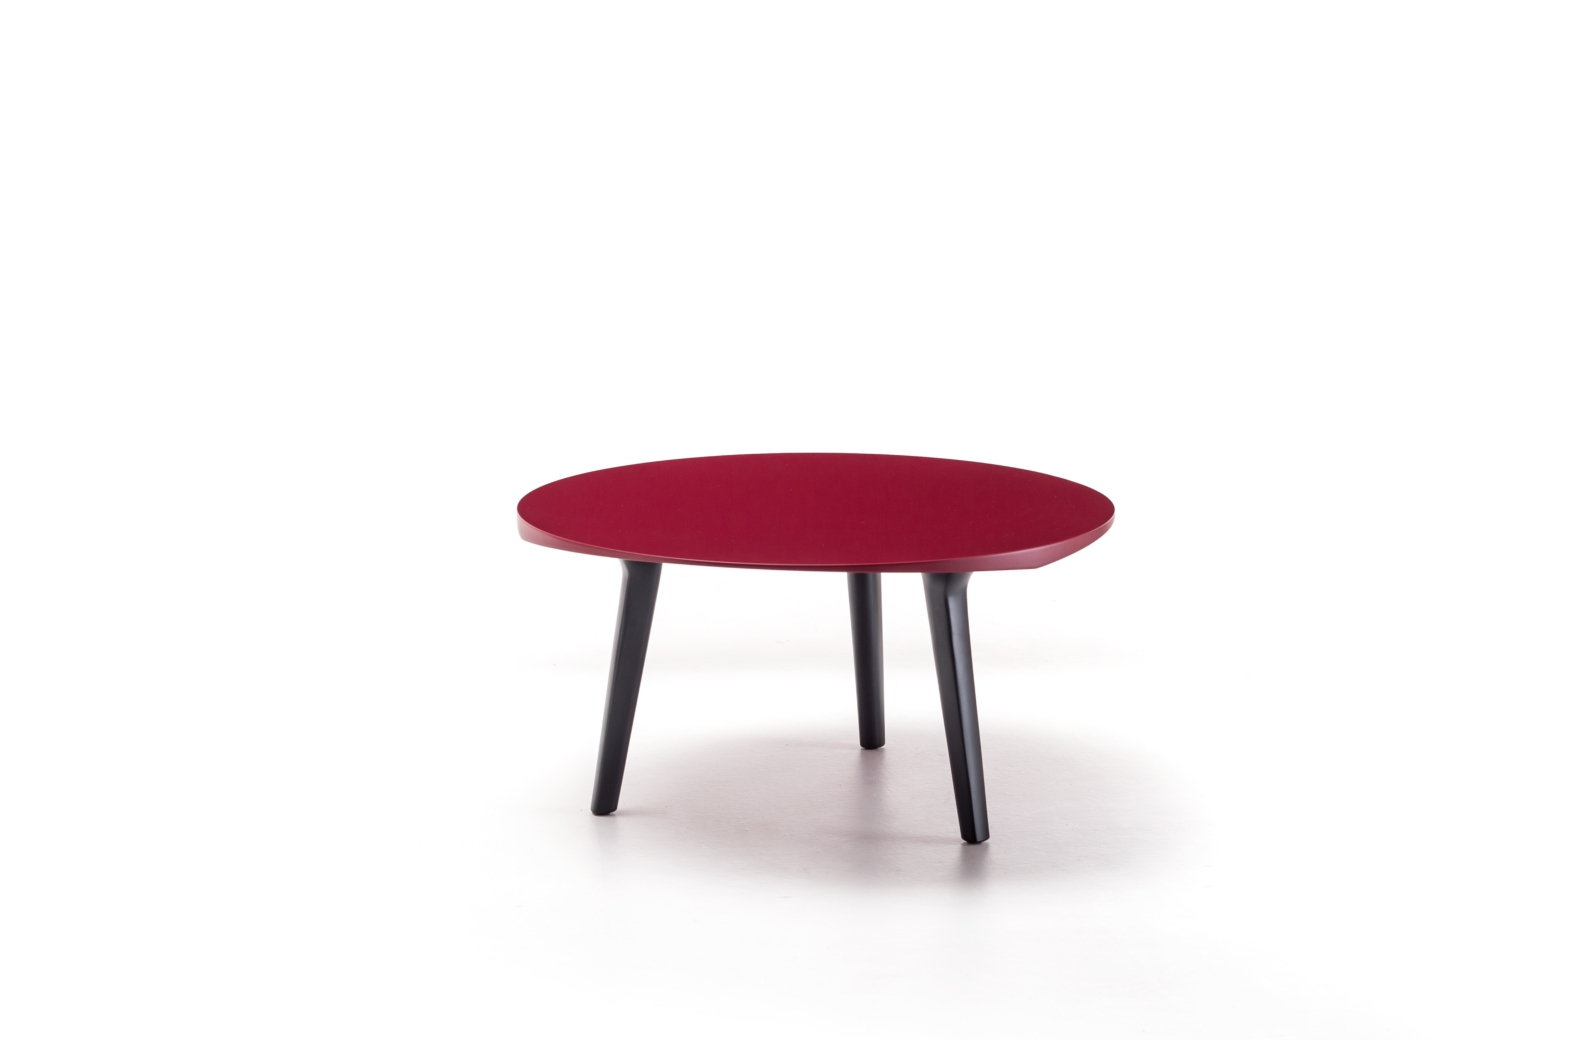 ADEMAR Coffee Table by Giulio Iacchetti for Bross